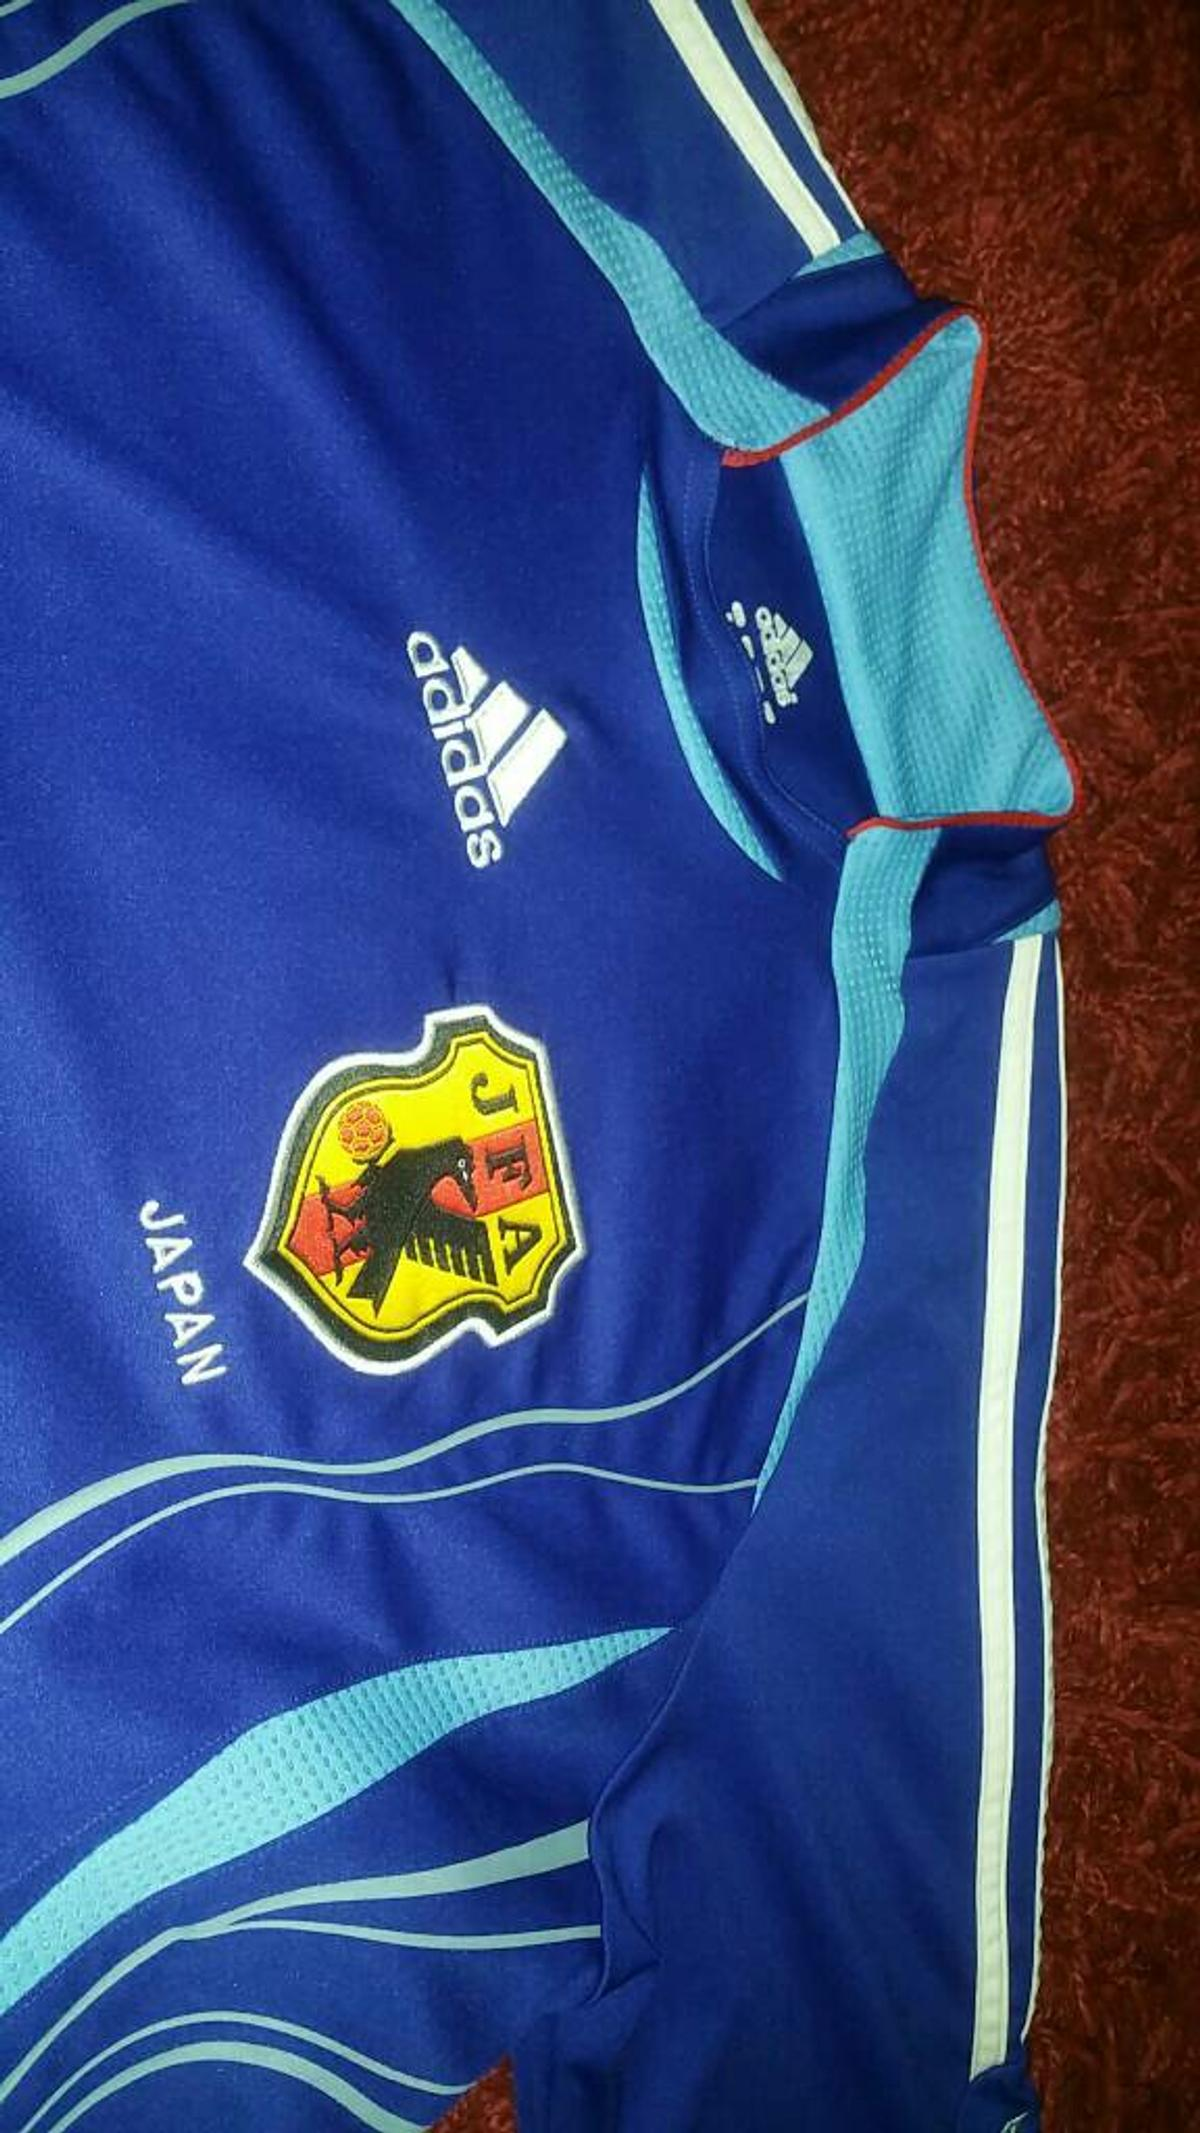 ORIGINAL ADIDAS JAPAN TRIKOT in 90451 Nürnberg for €20.00